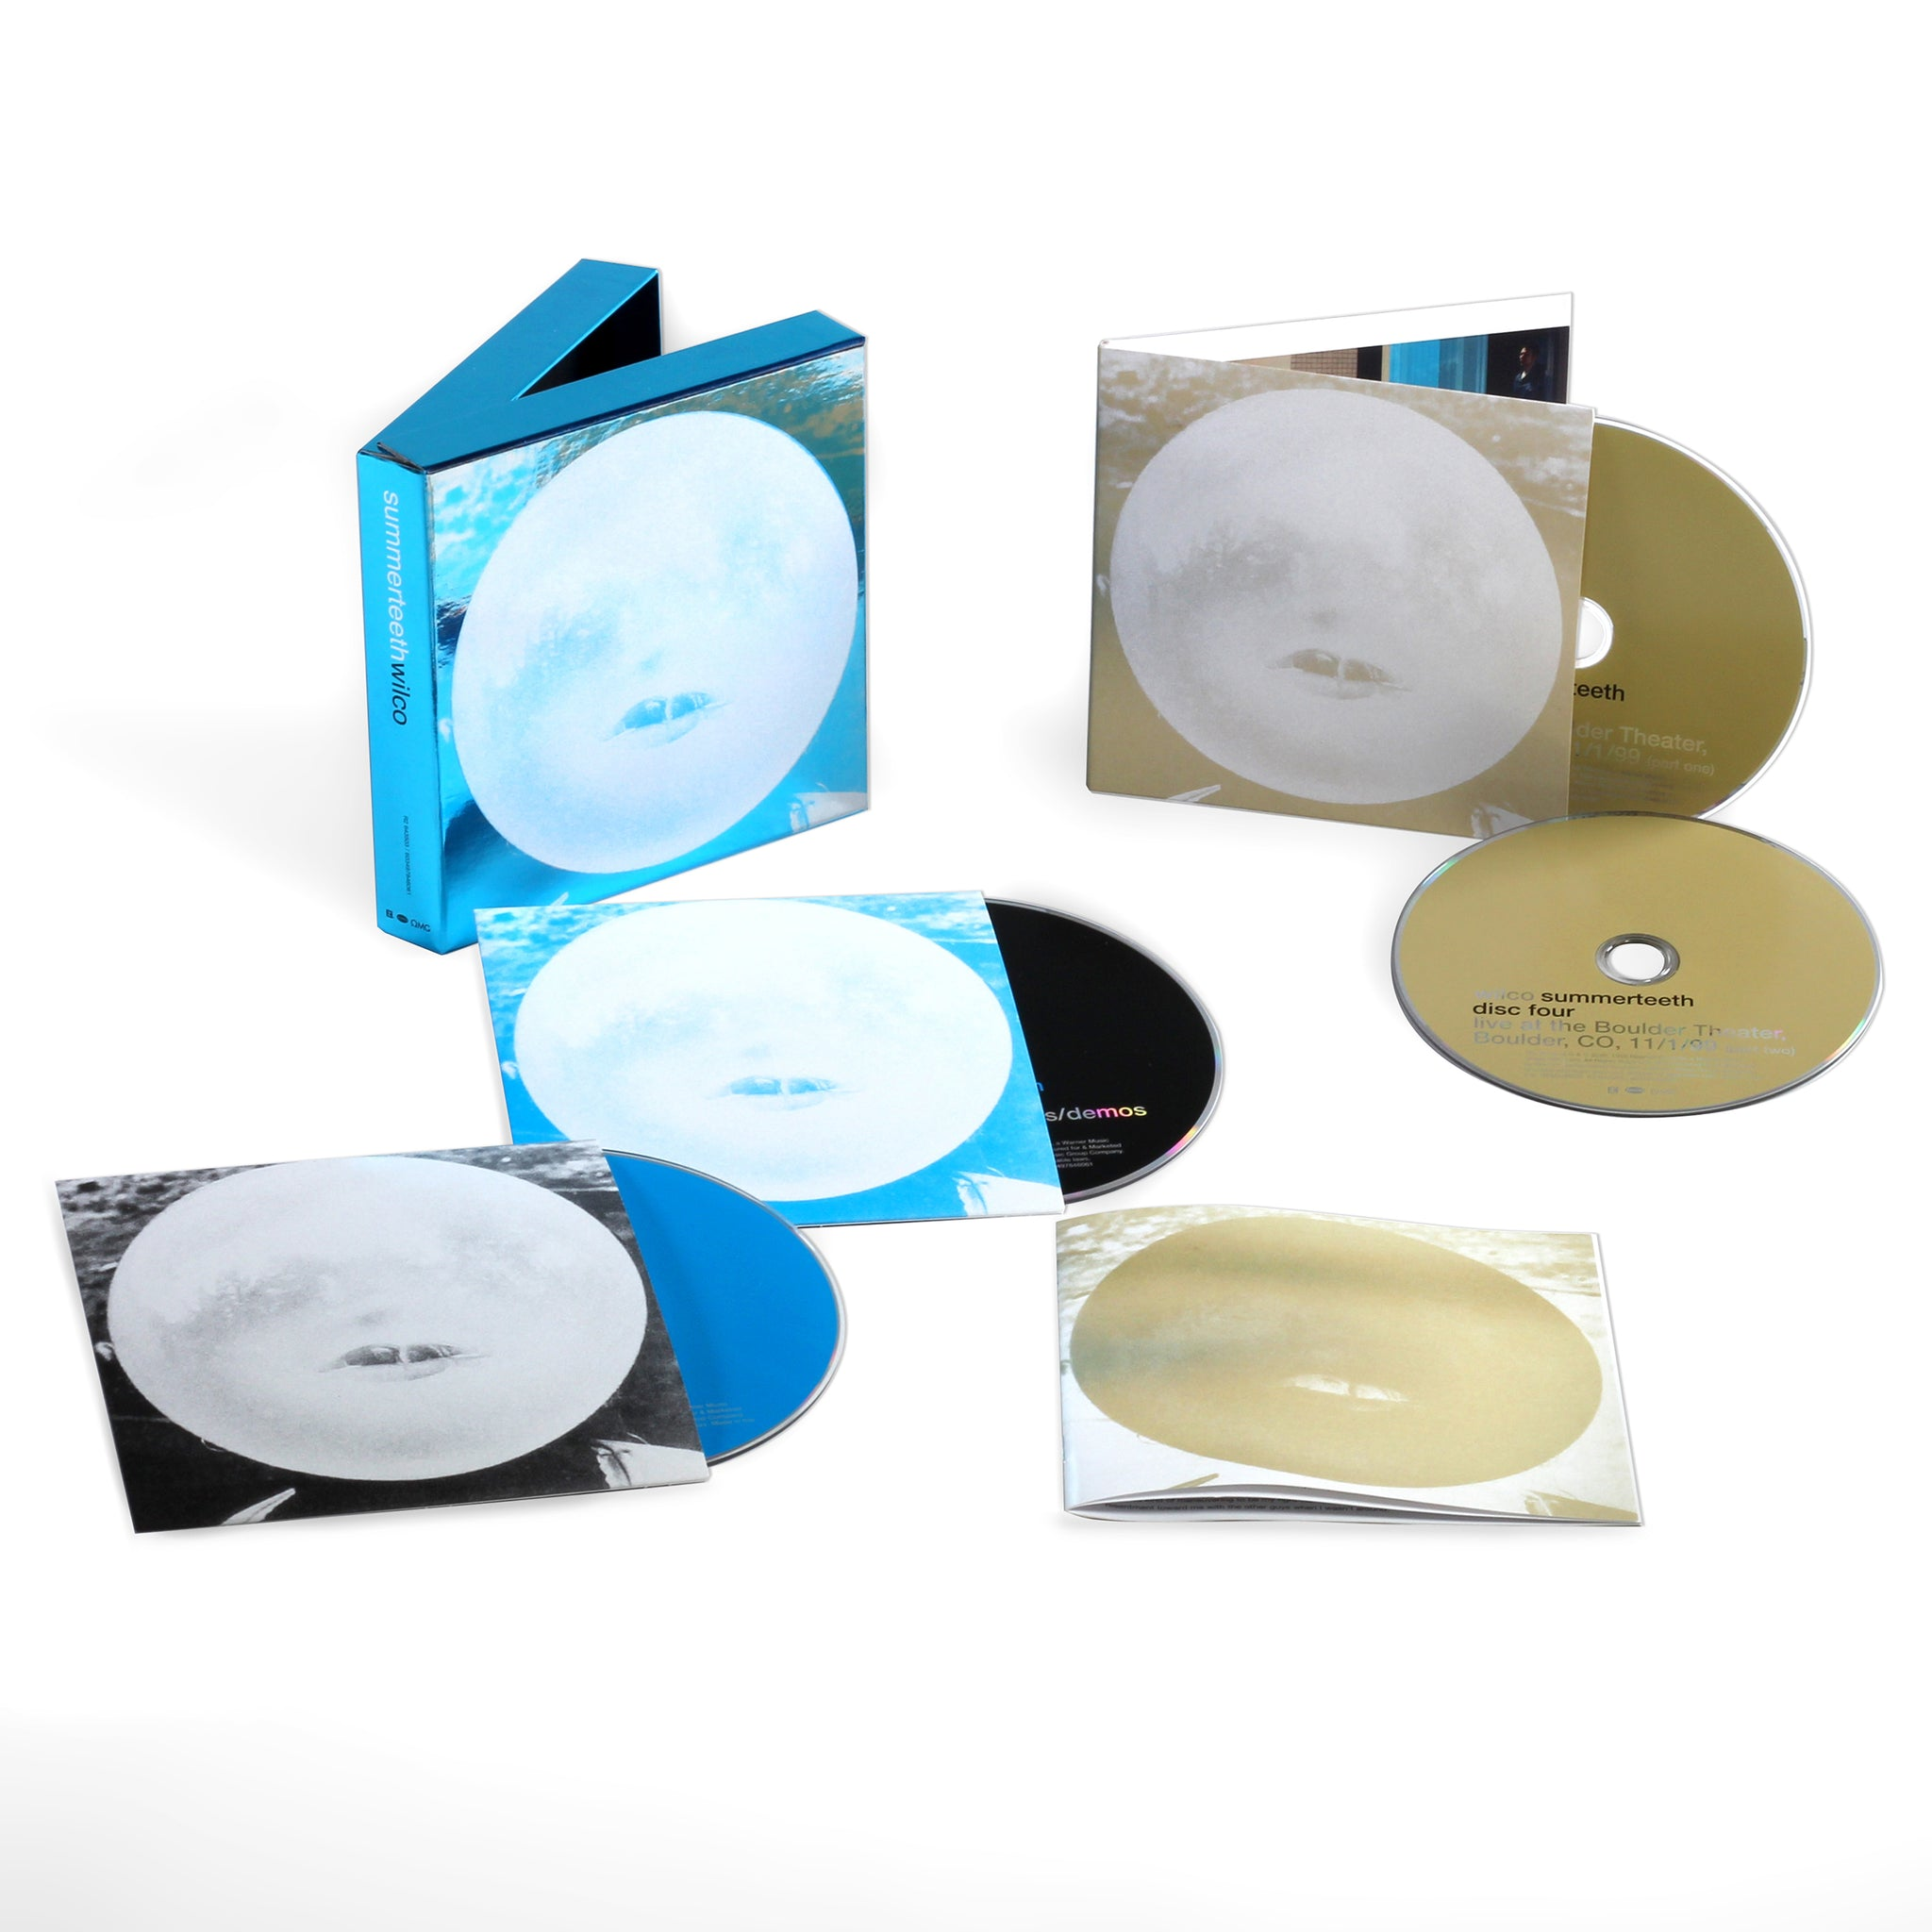 Summerteeth Deluxe Edition CD